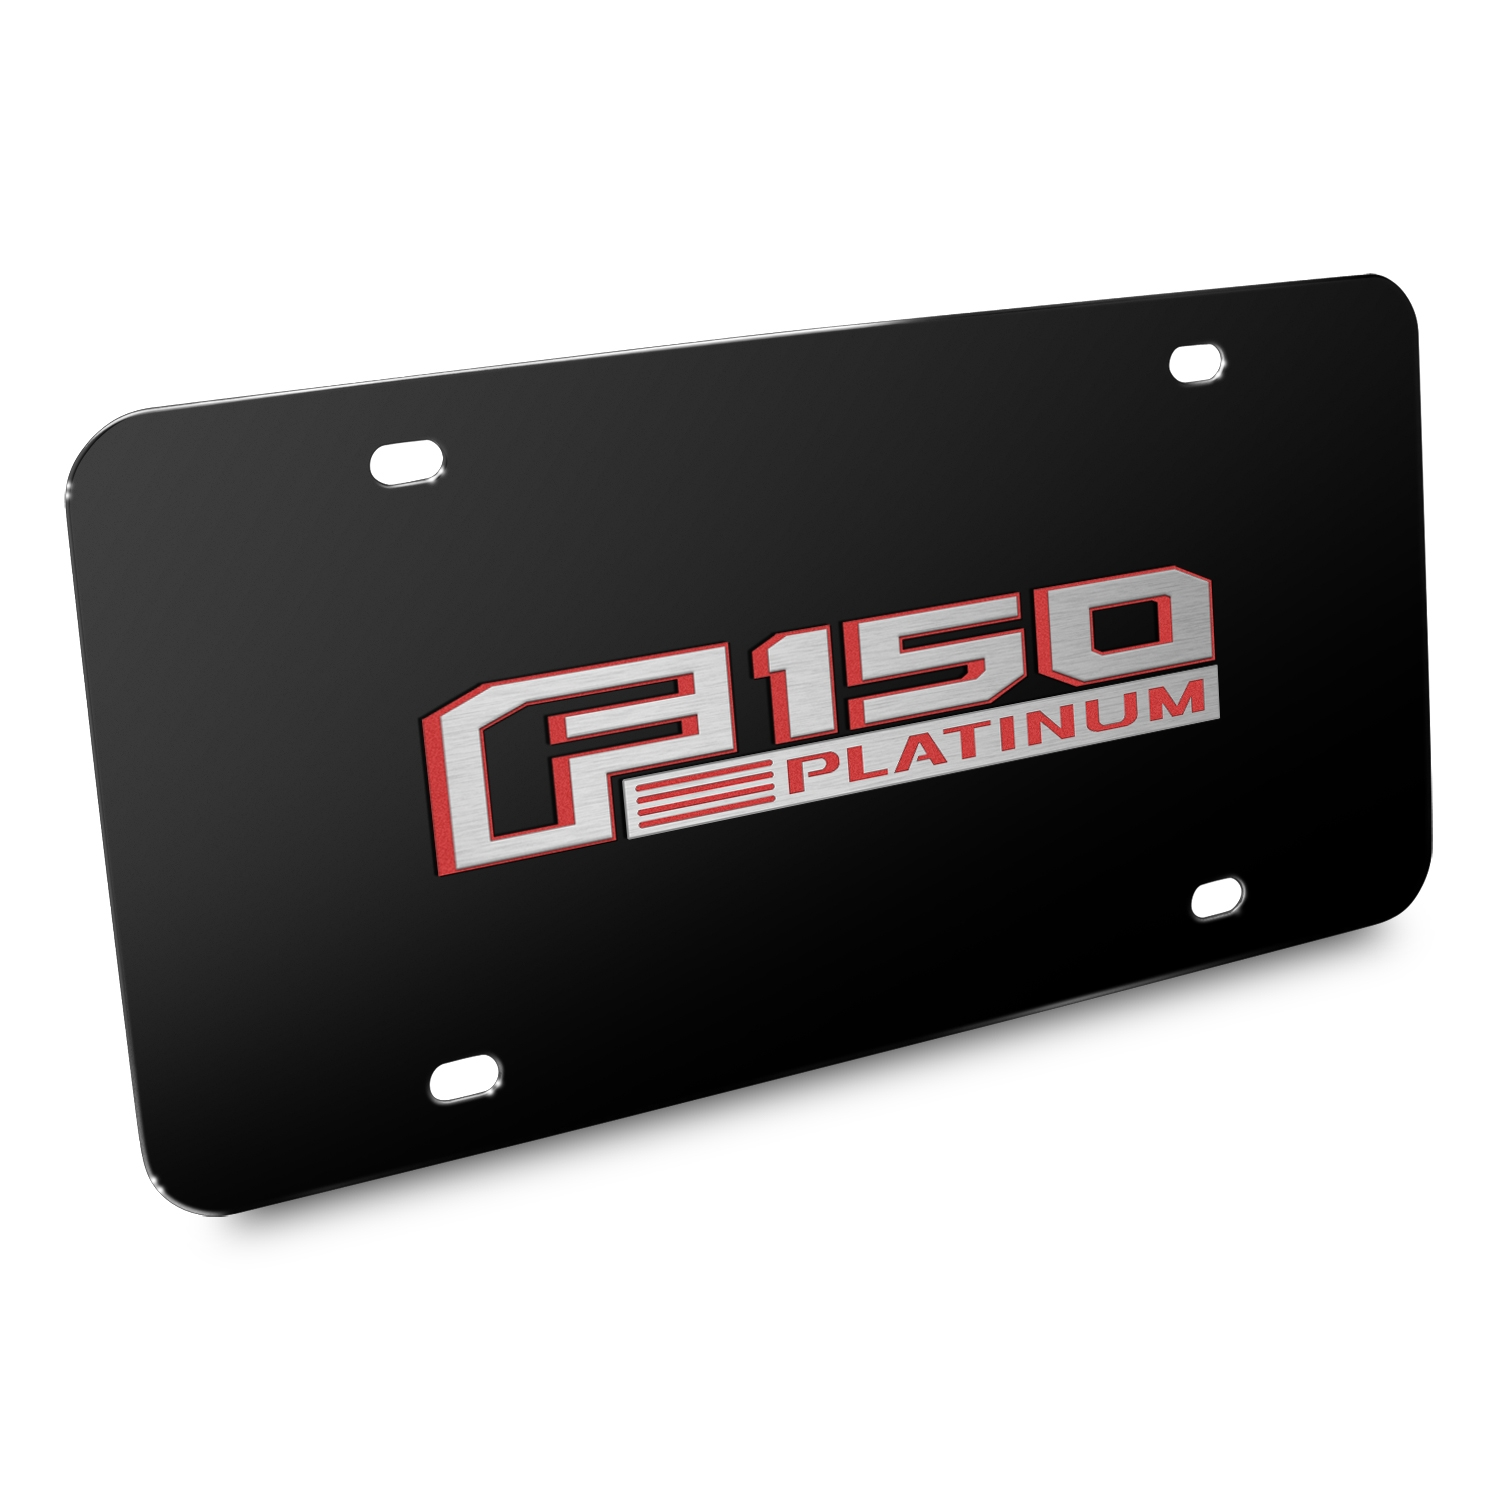 Ford 150 Platinum in Red 3D Black Stainless Steel License Plate